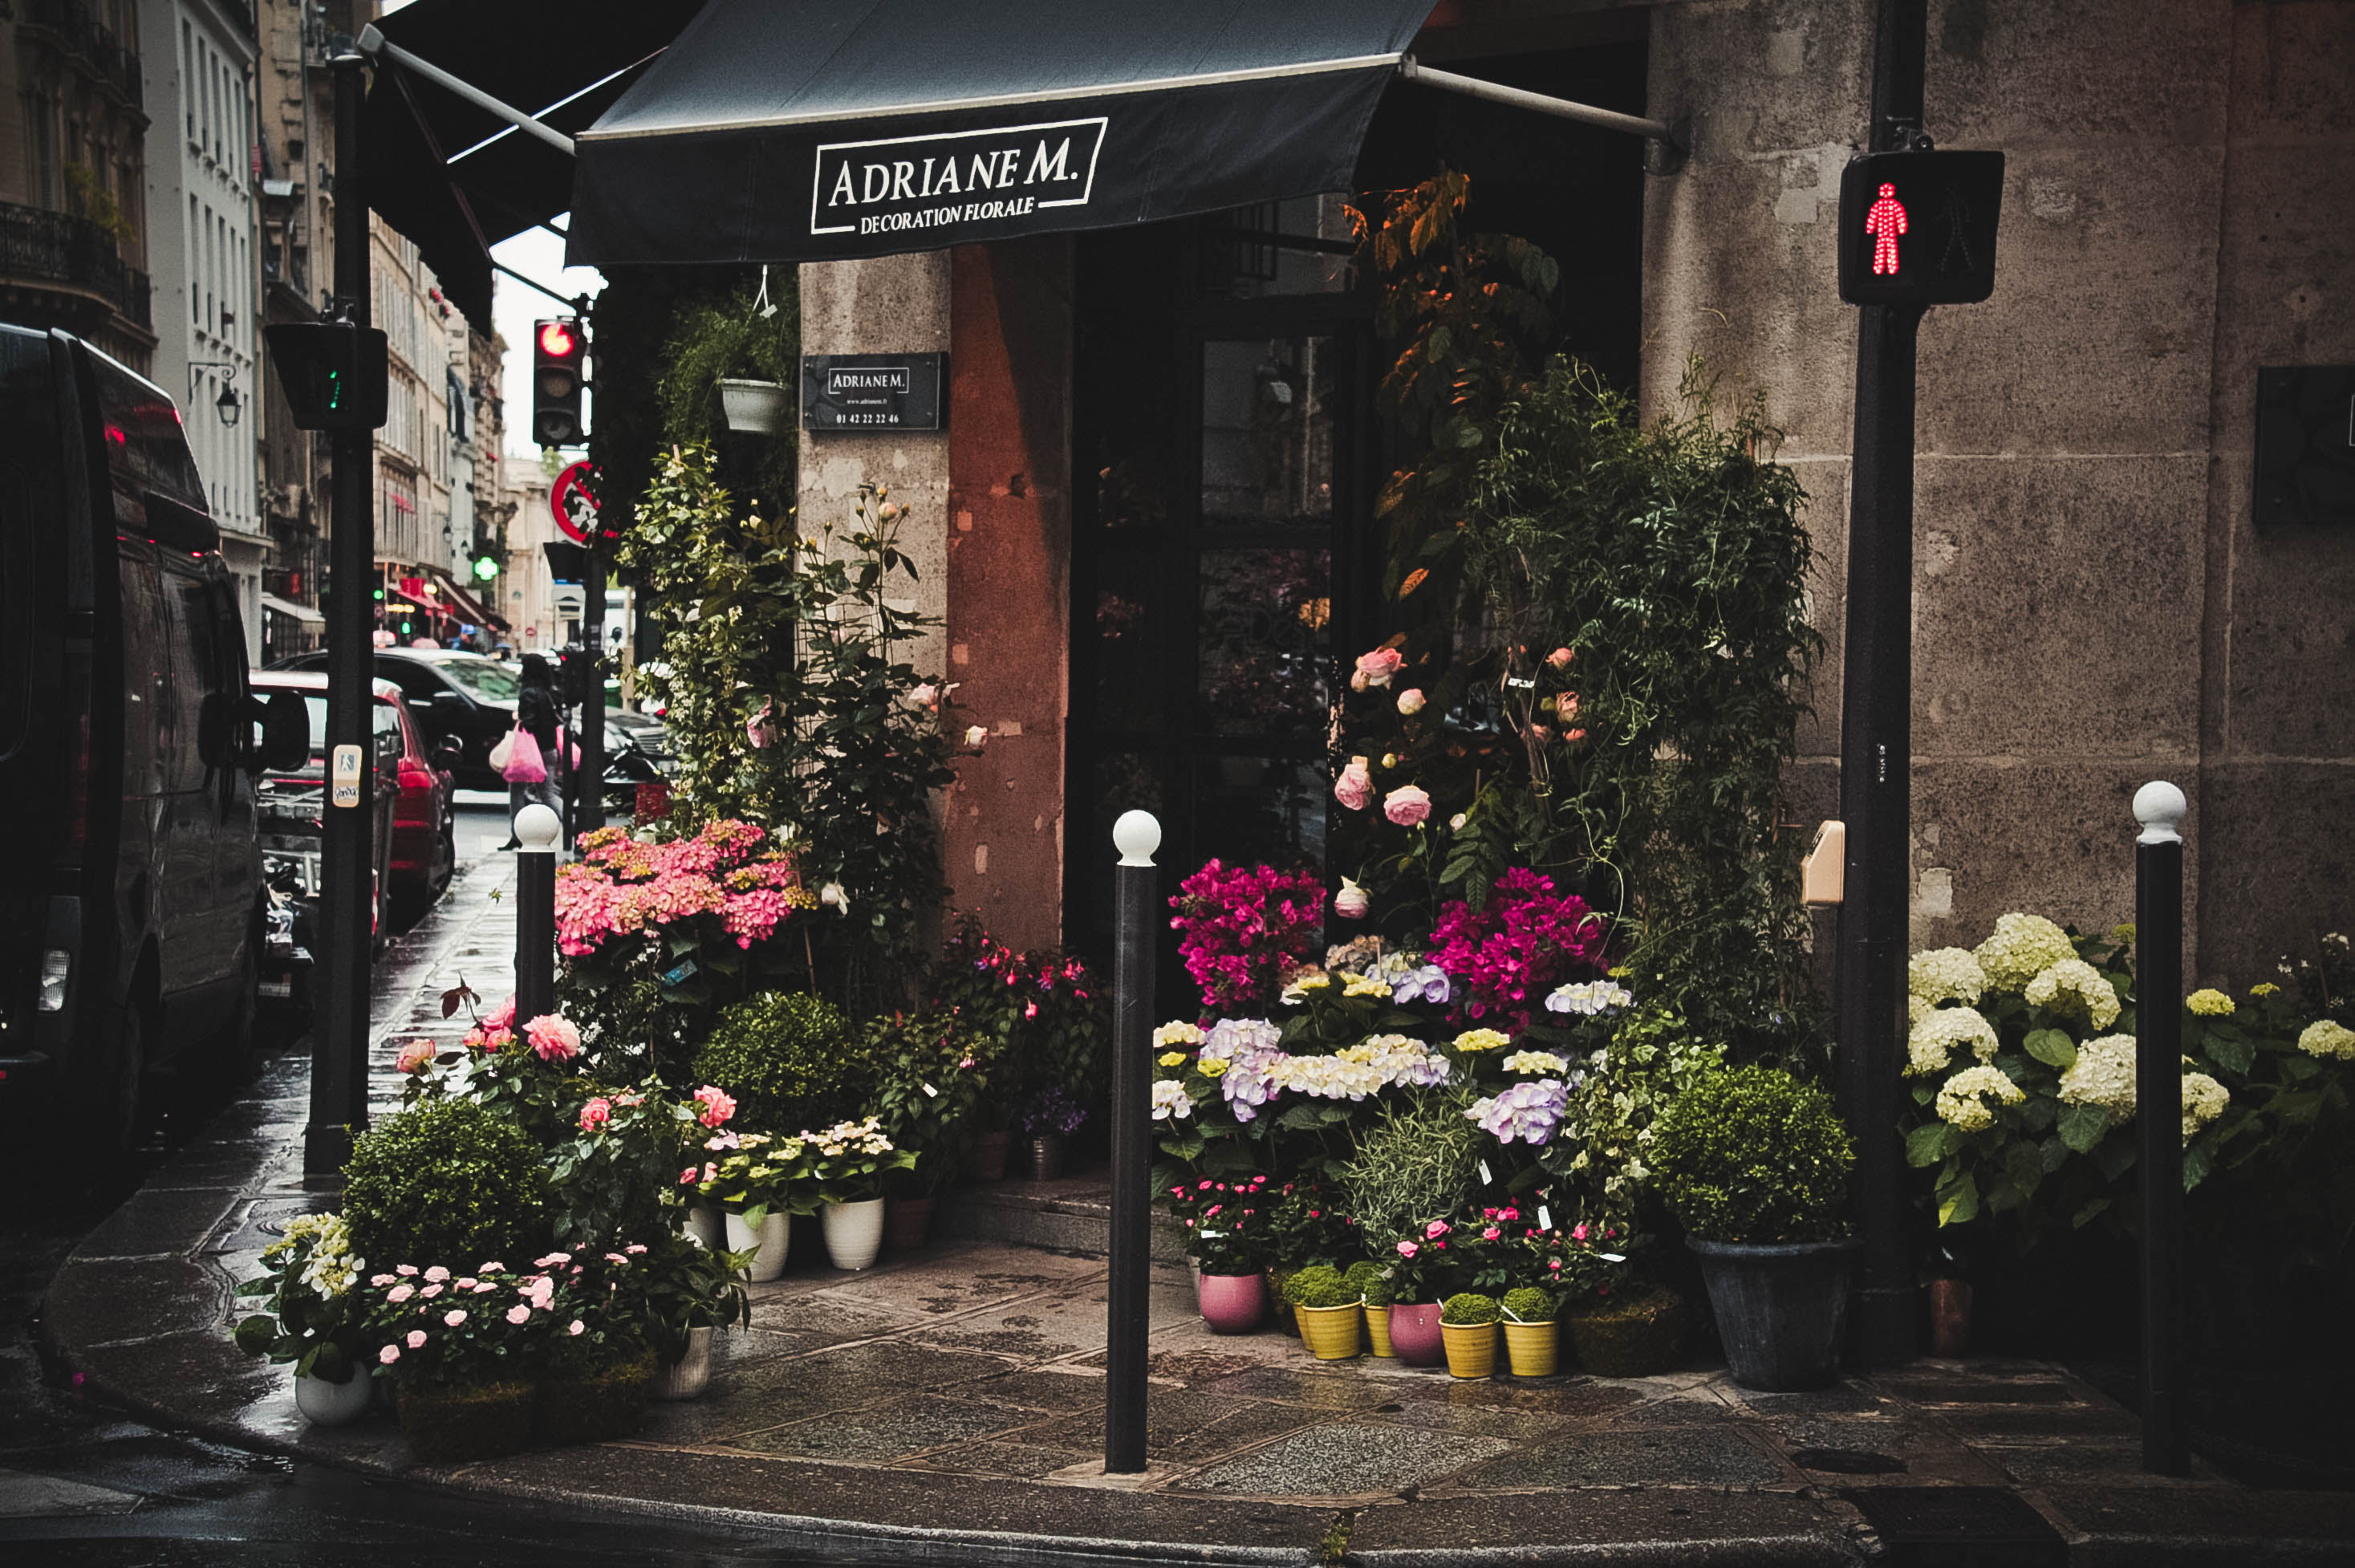 Florist business - Flower shop on the corner with pink flowers outside